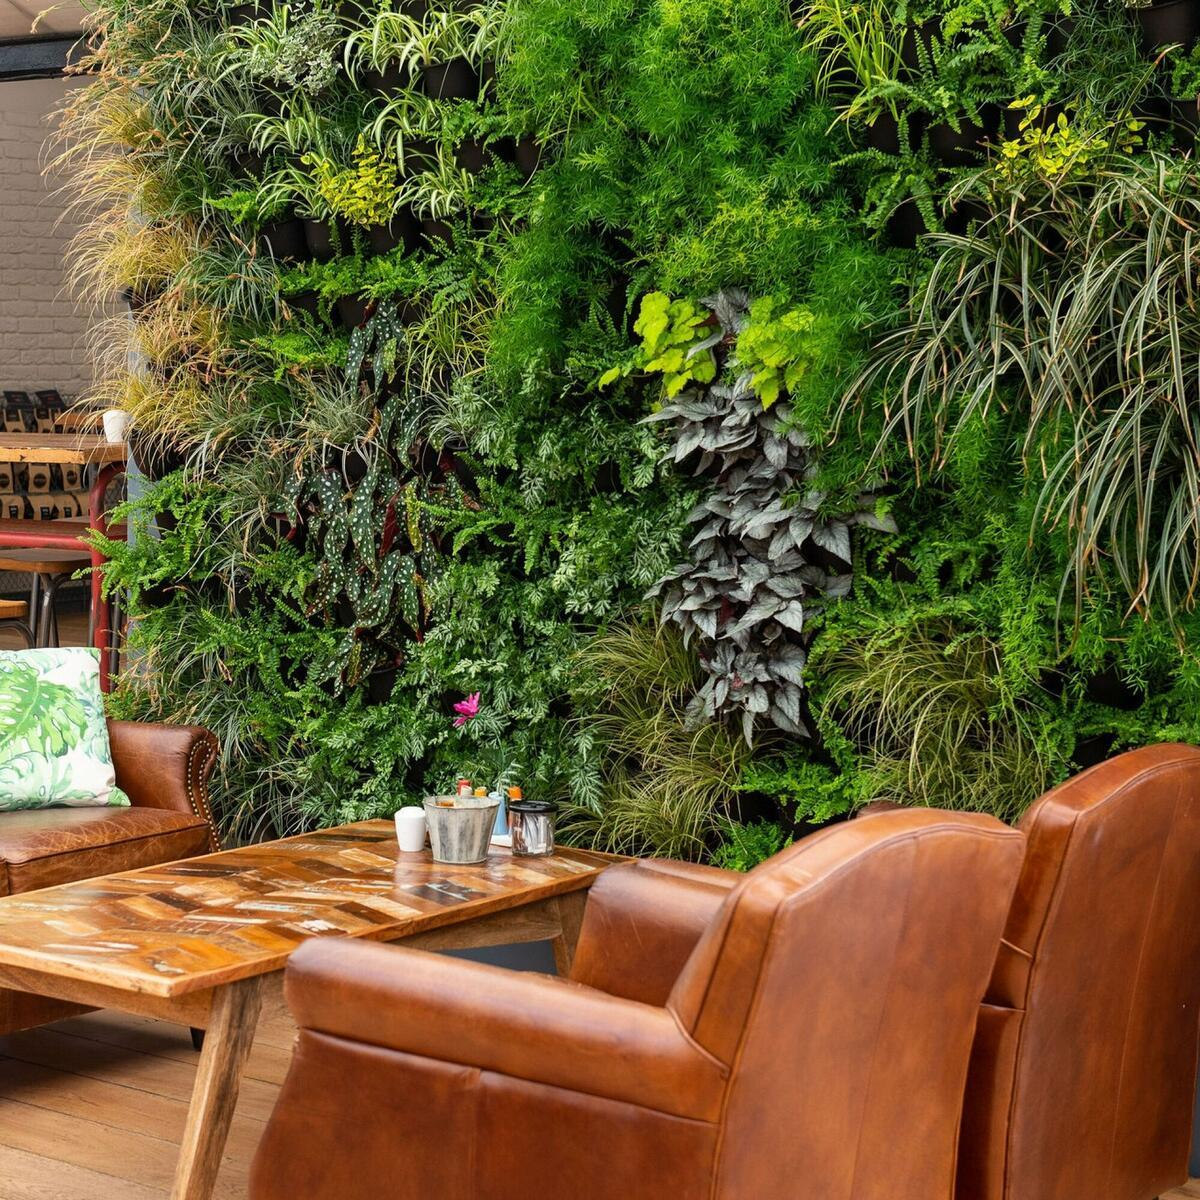 Living wall brings the outside in!